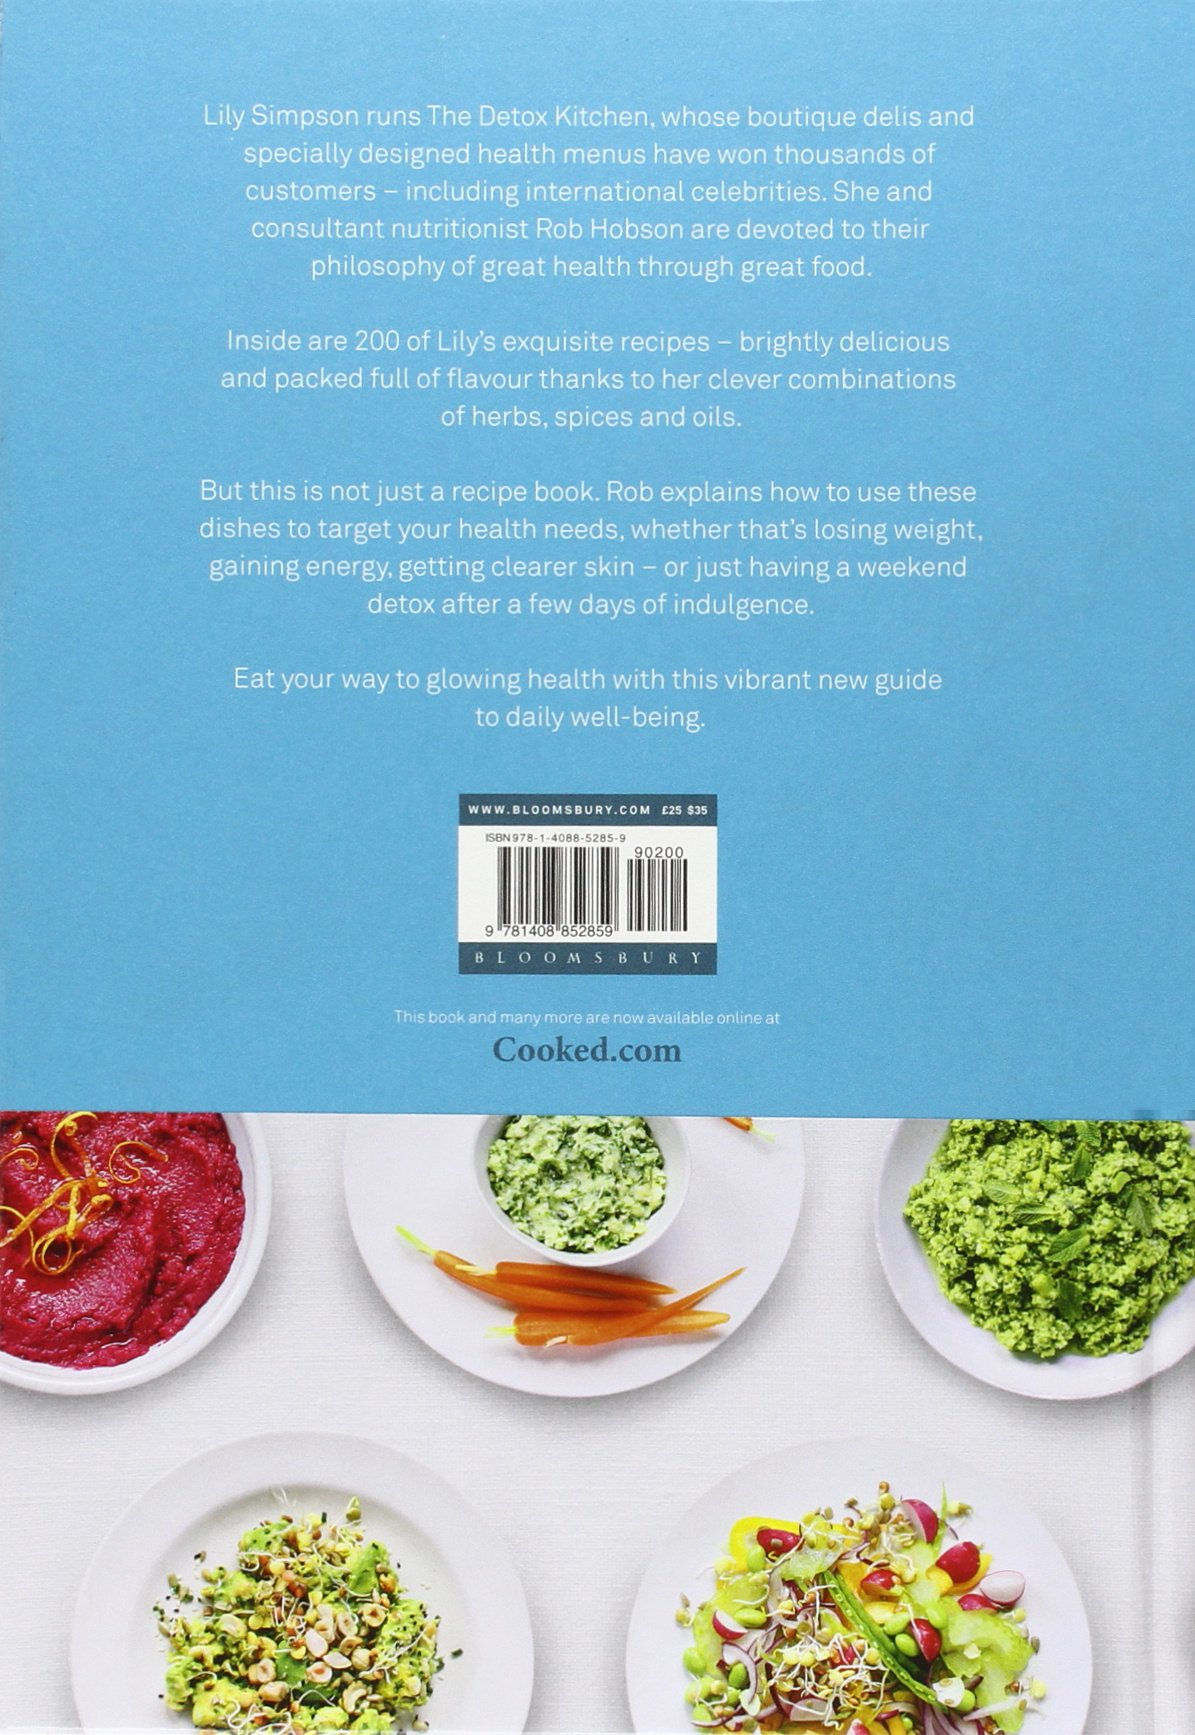 Buy The Detox Kitchen Bible Book Online at Low Prices in India | The ...